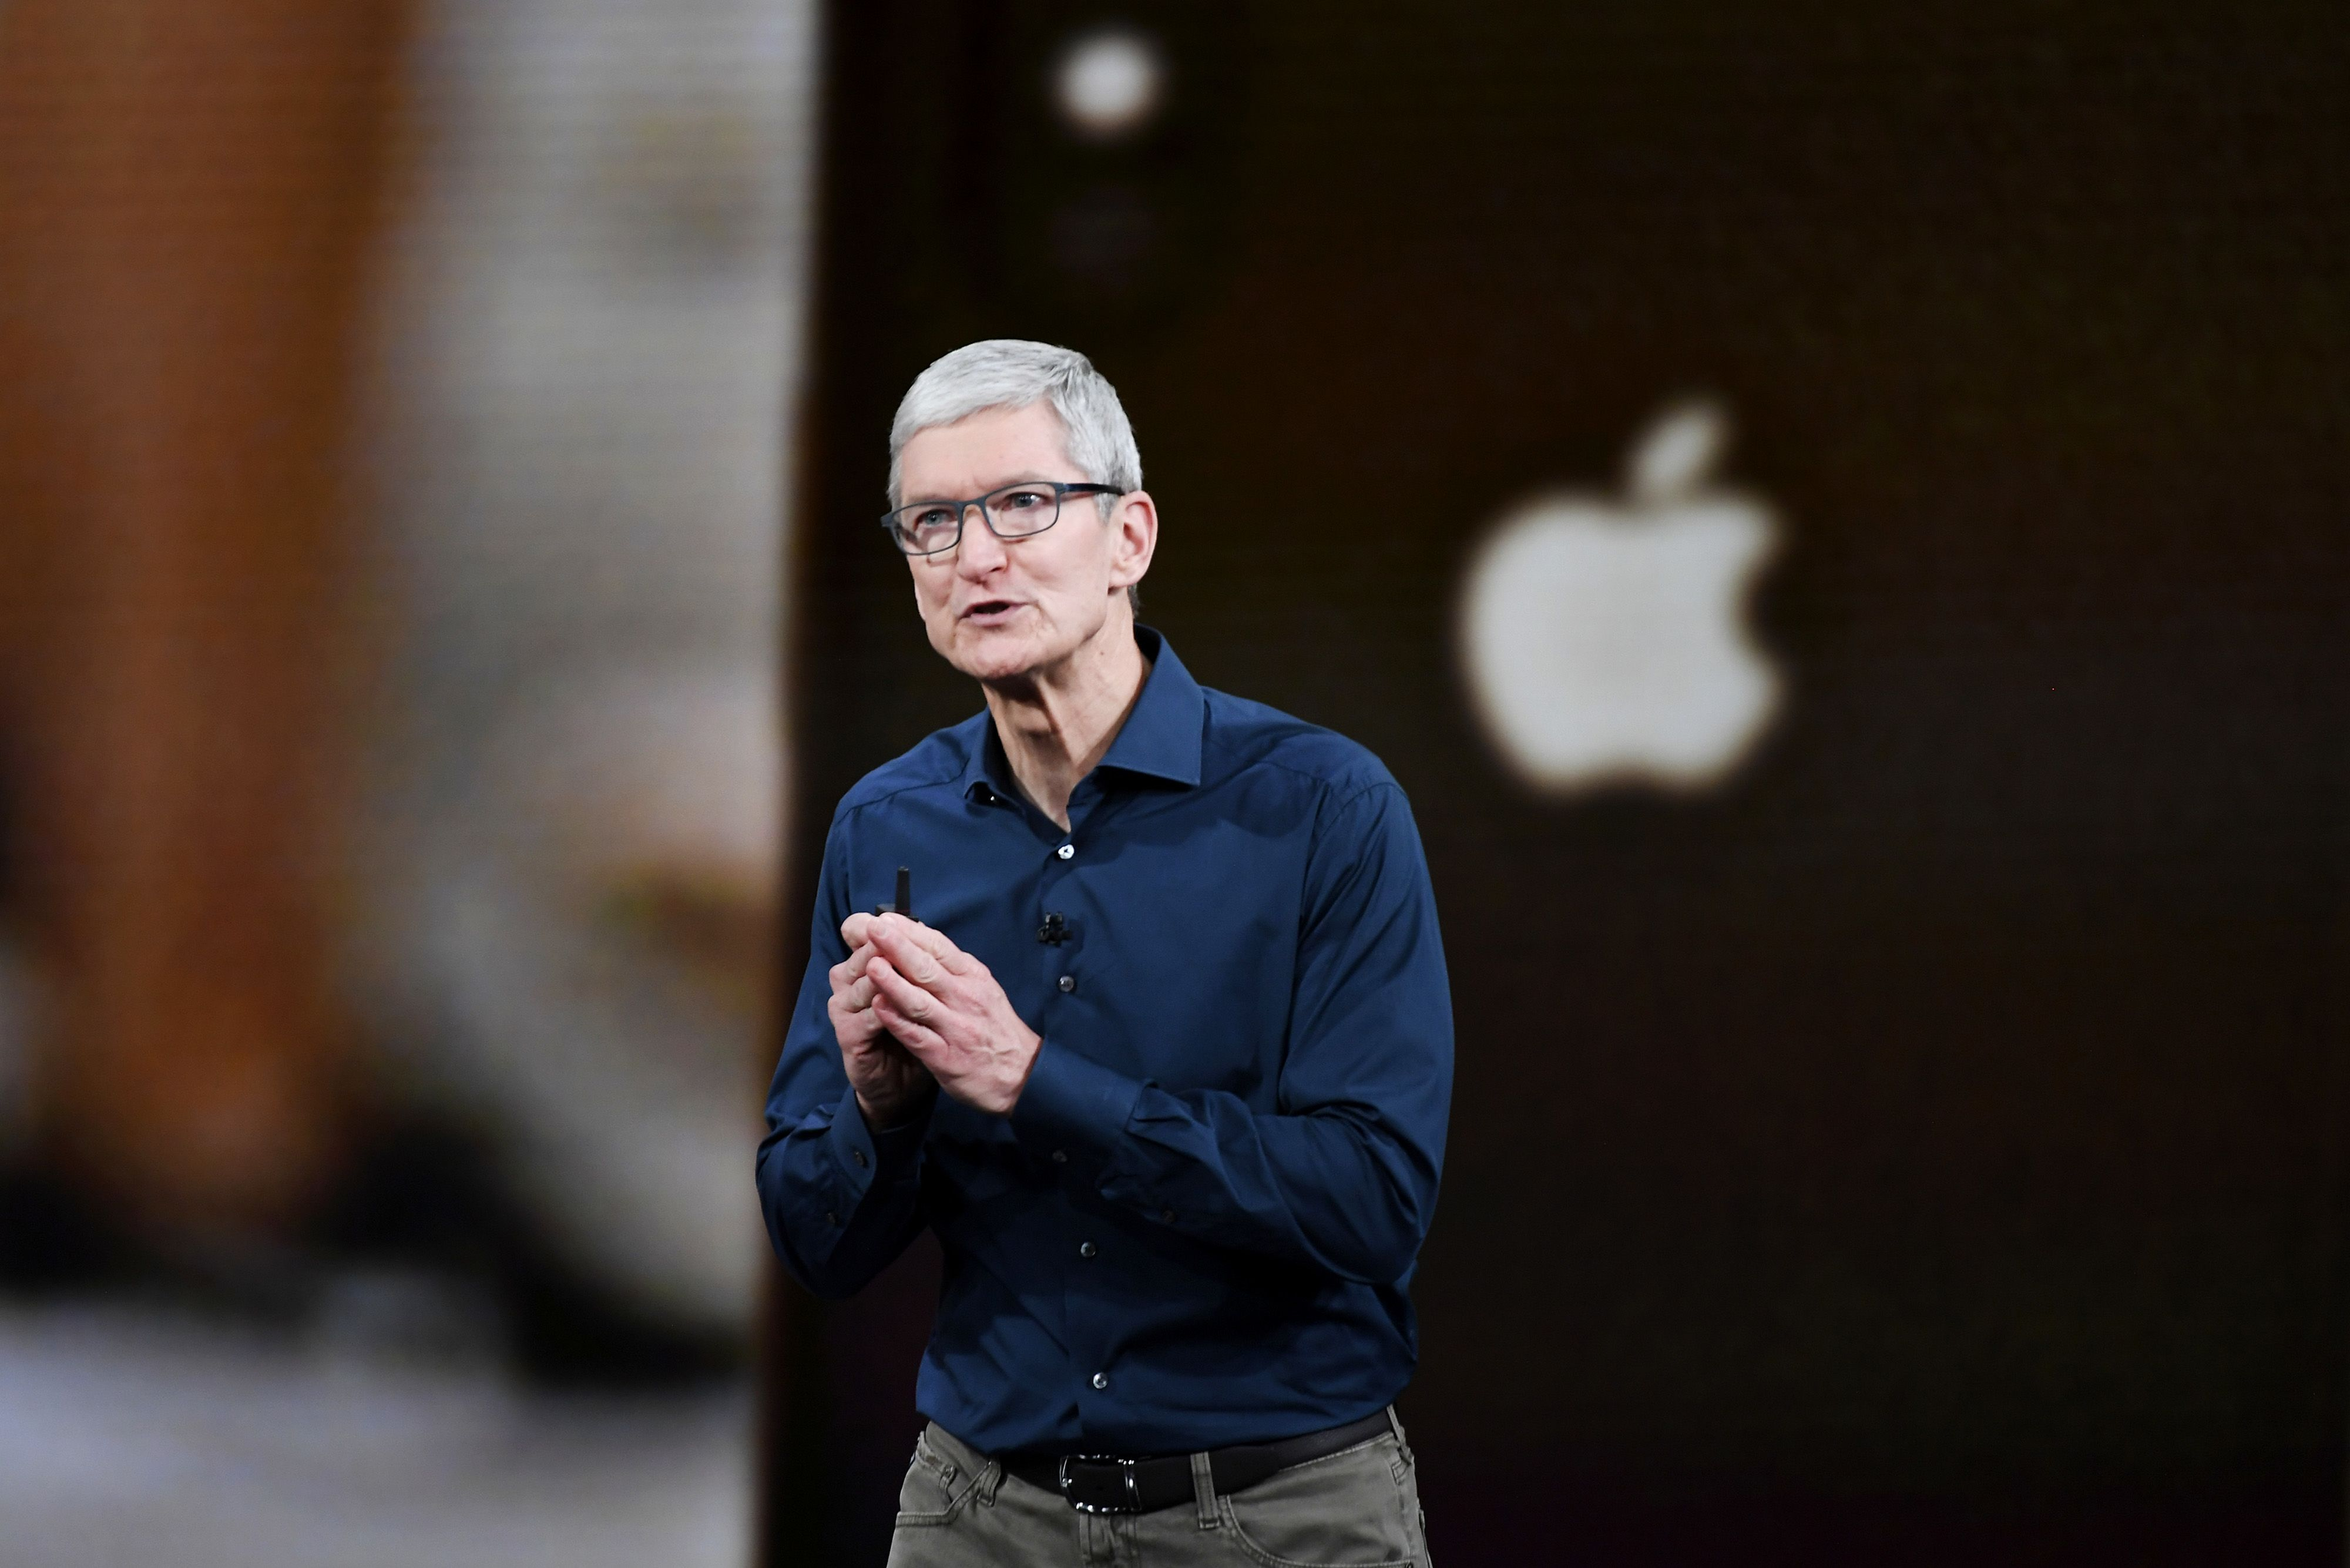 Apple CEO Tim Cook Stanford commencement speech